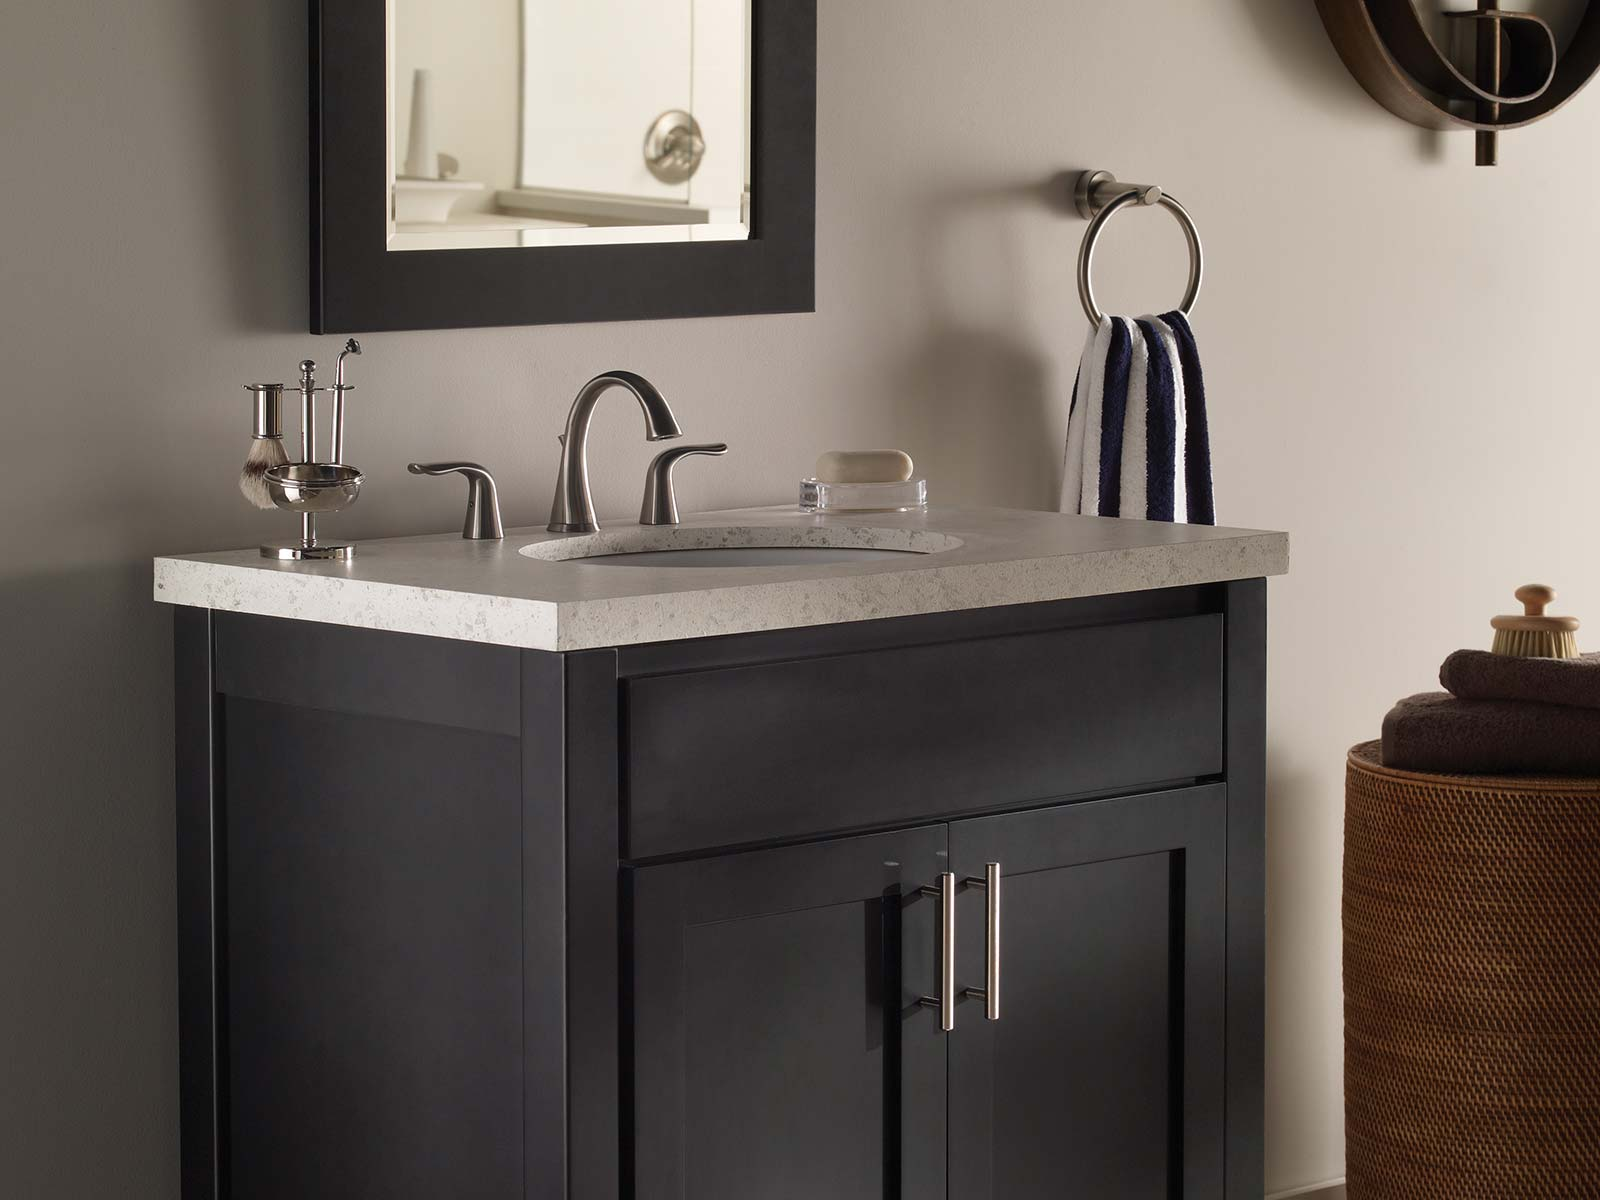 Bath Vanities and Bath Cabinetry - Bertch Cabinet Manufacturing